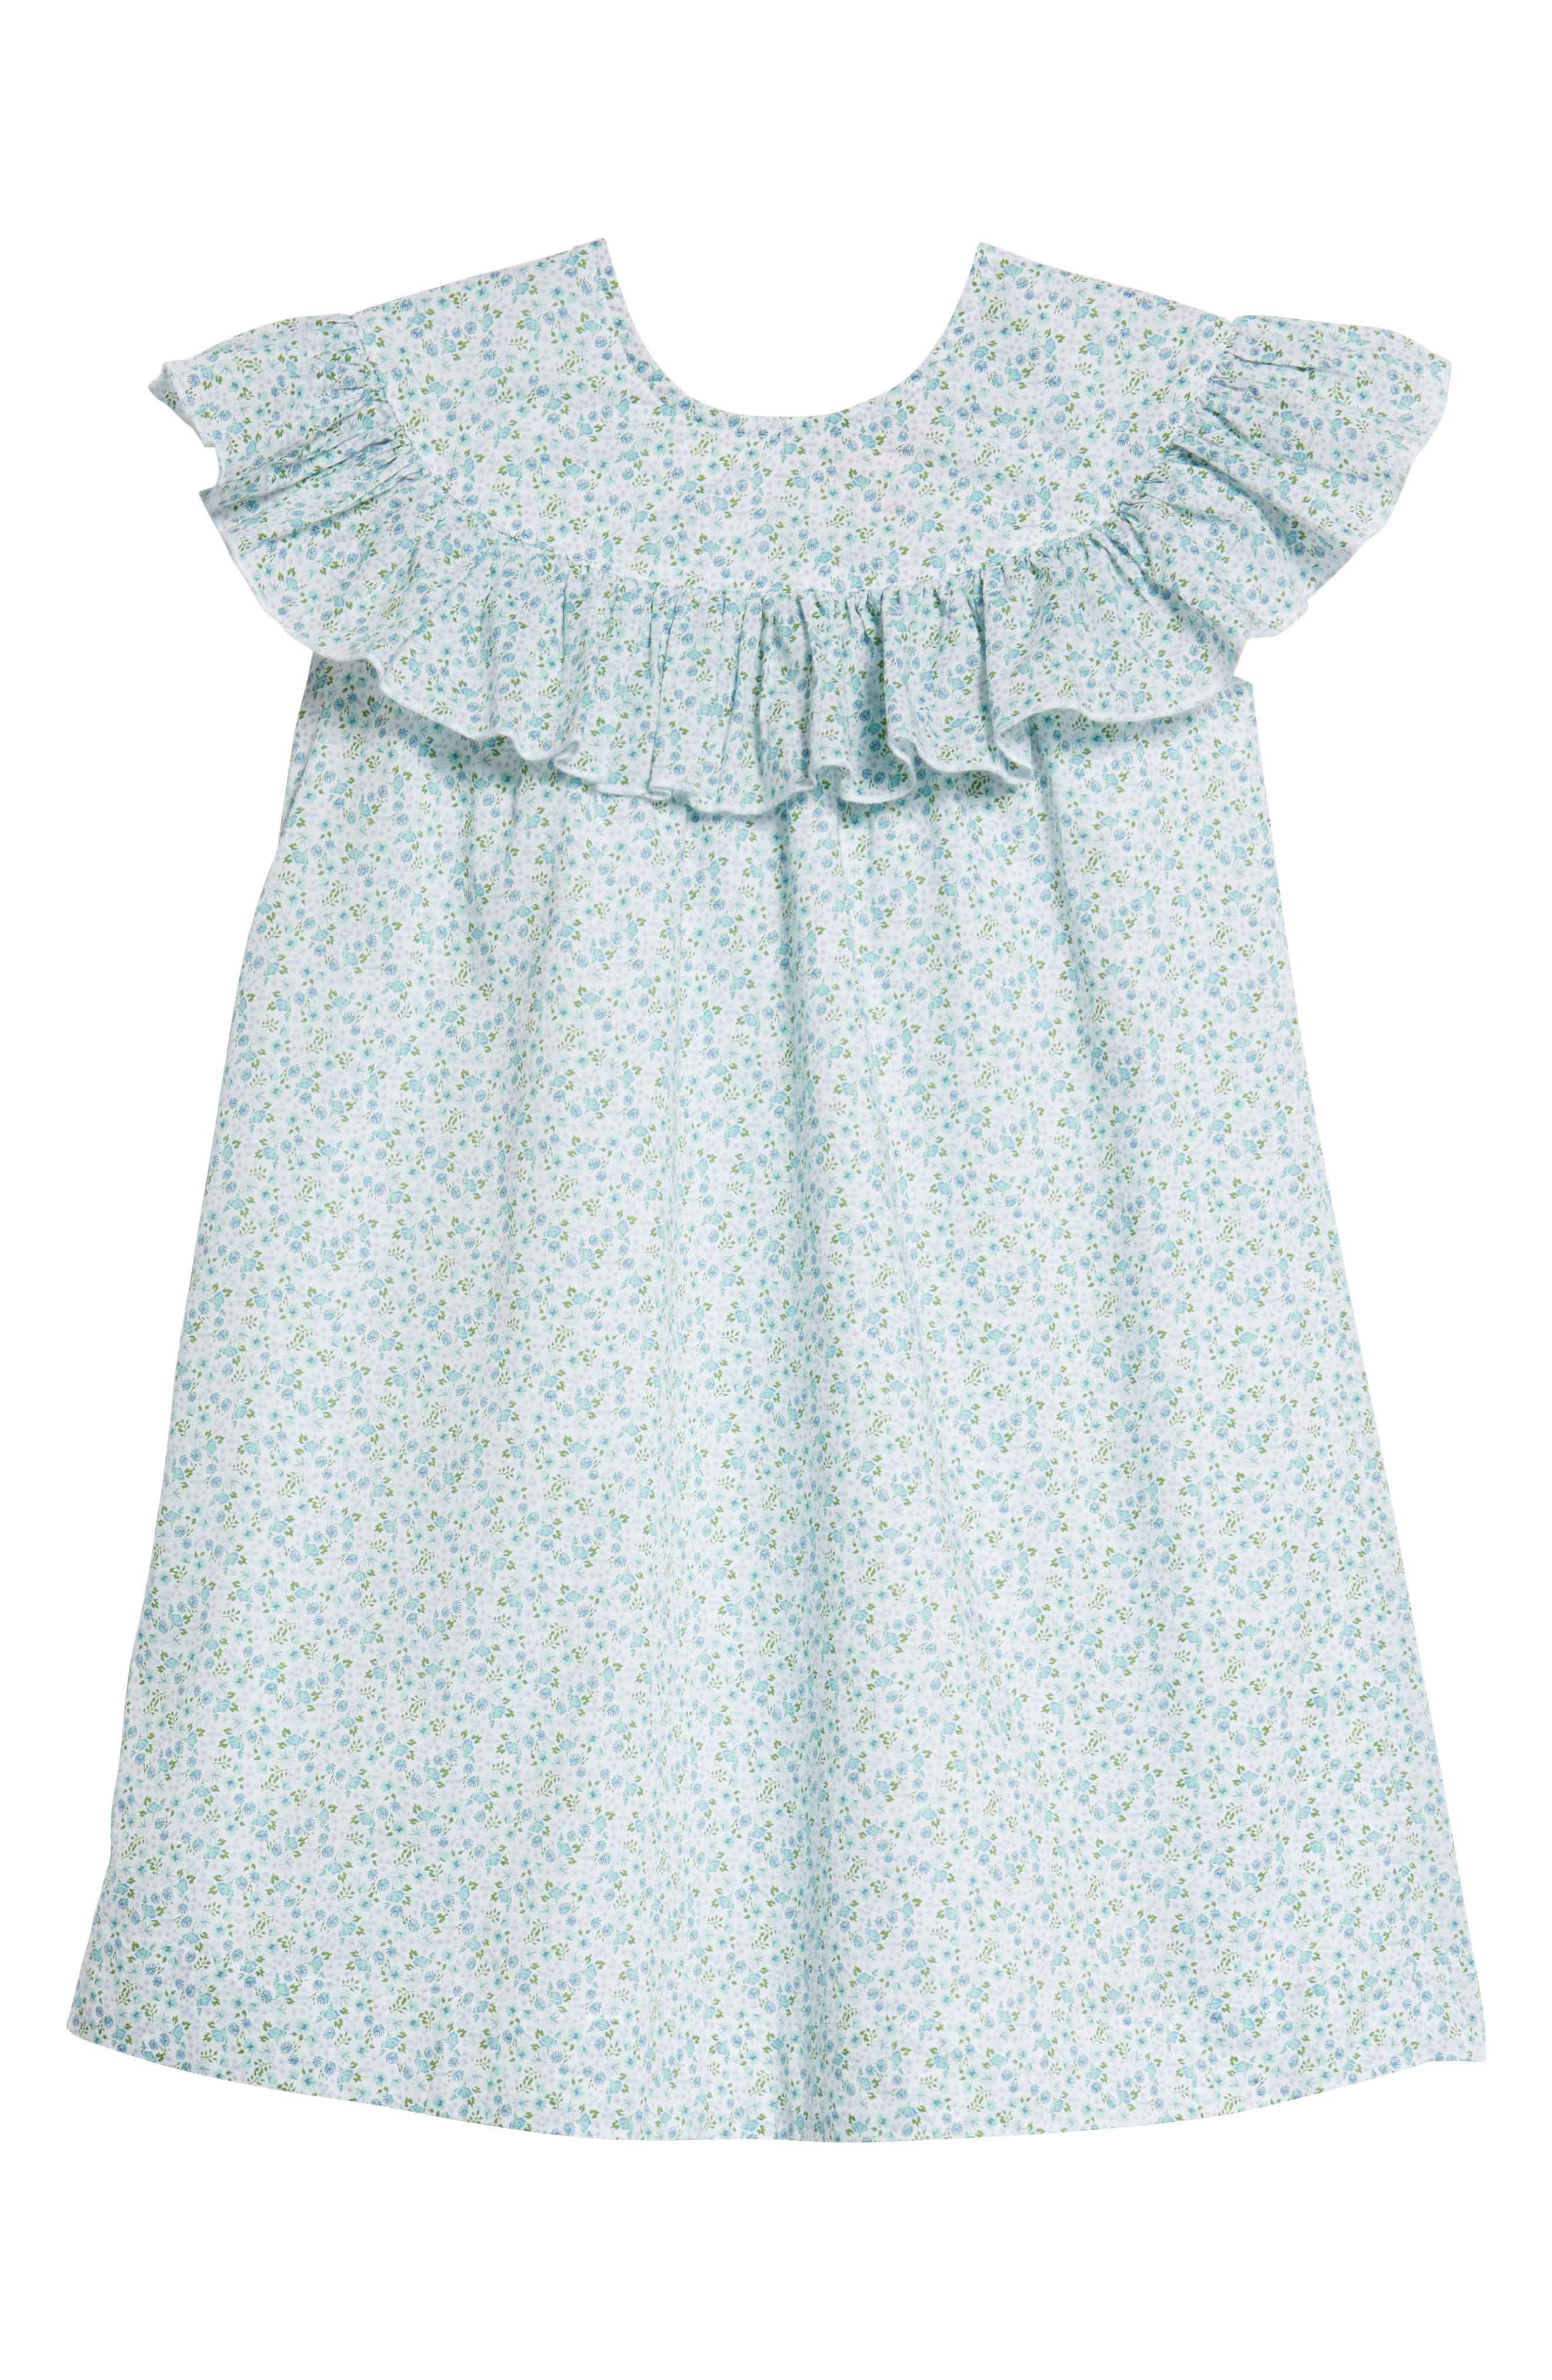 Ruffle Dress,                         Main,                         color, White- Blue Tropic Ditsy